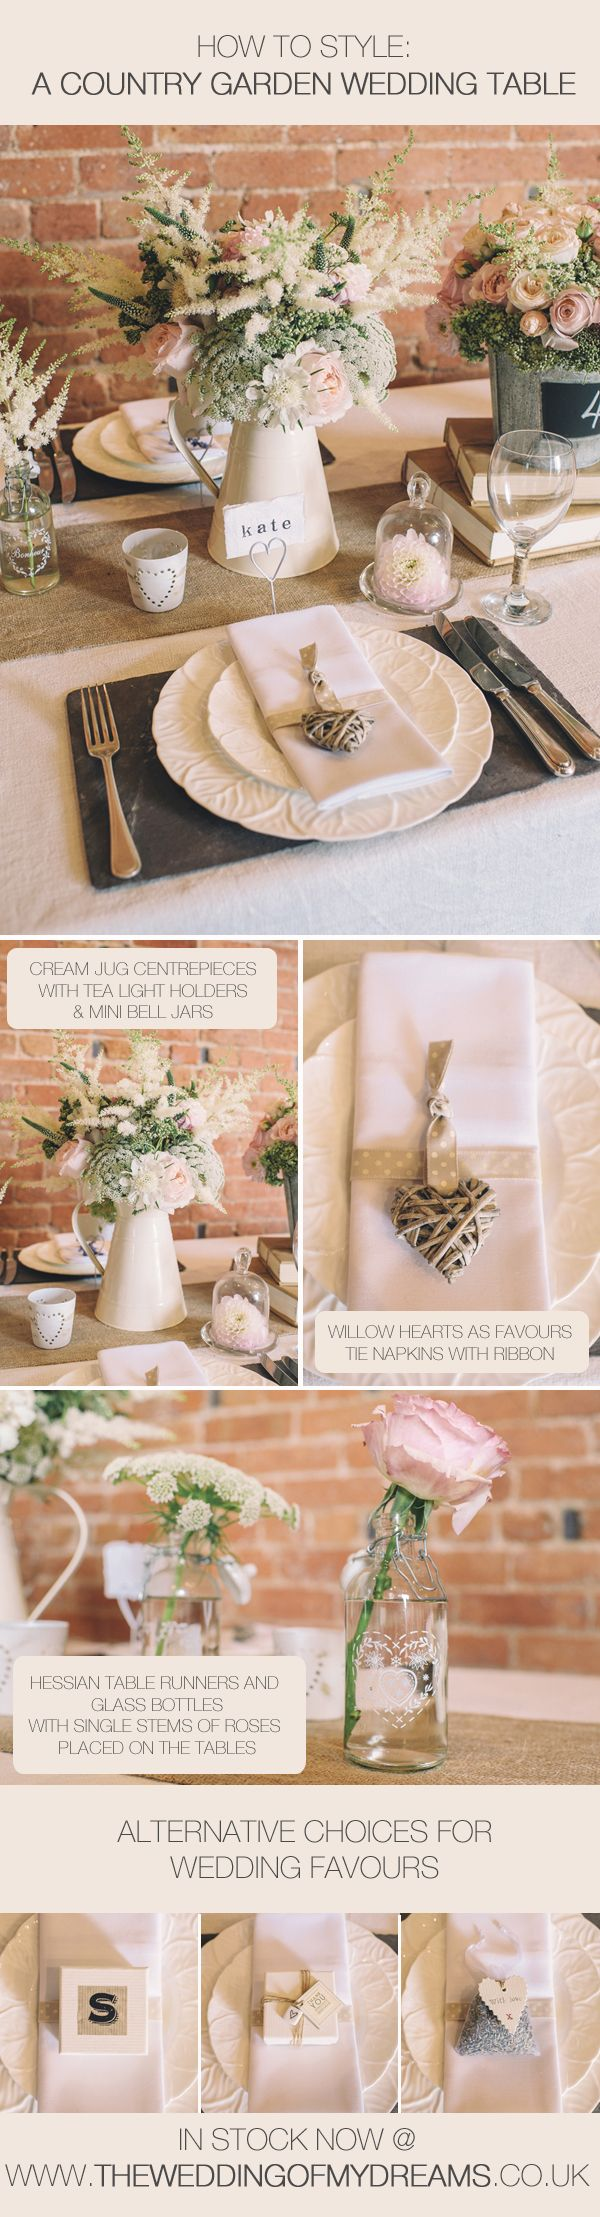 How To Style Country Garden Wedding Tables { Jug Centrepieces, Hessian Runners, Favours }